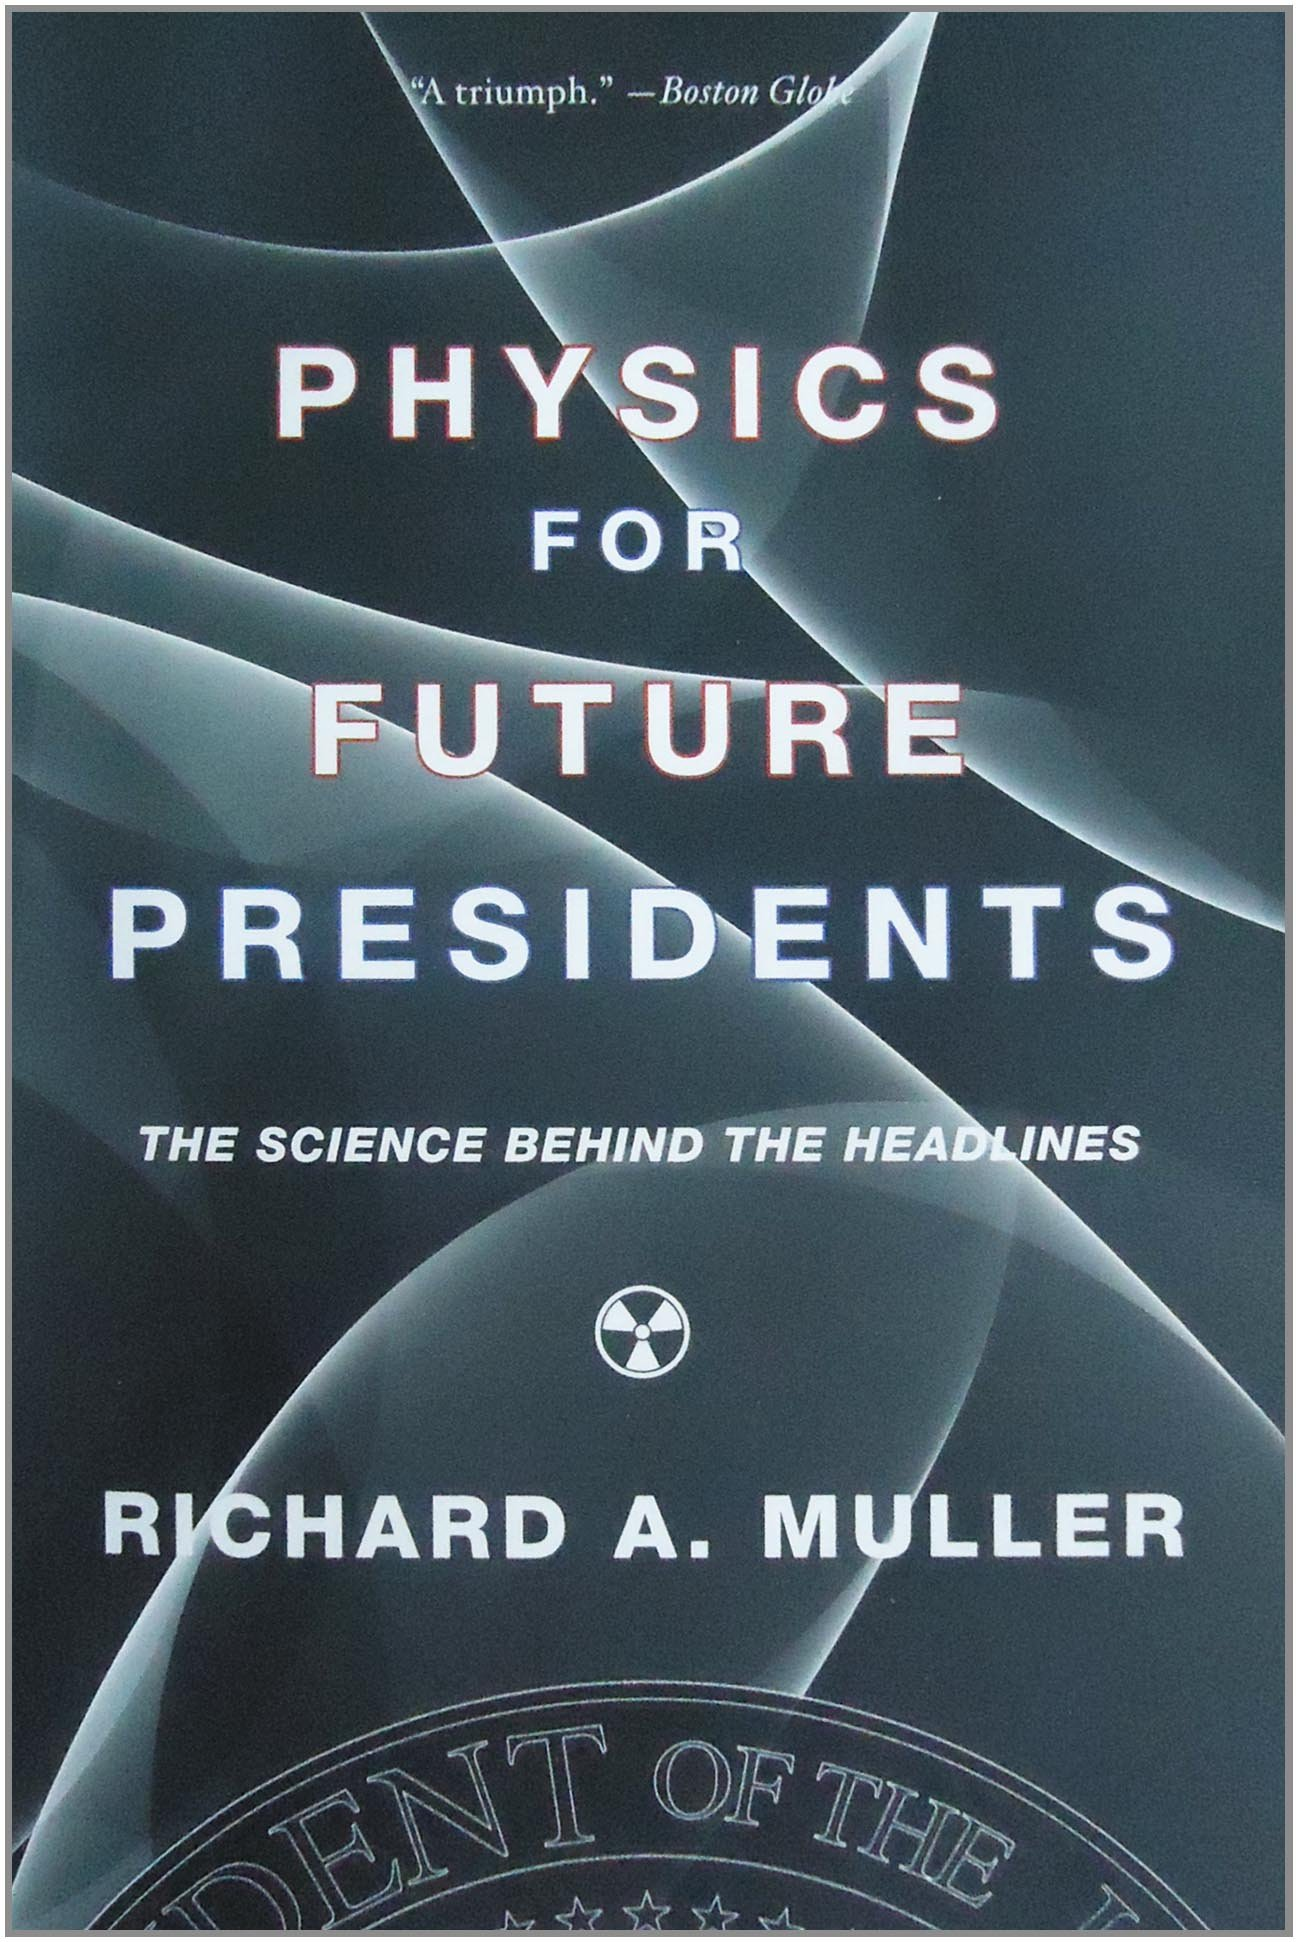 Presidents pdf for future physics